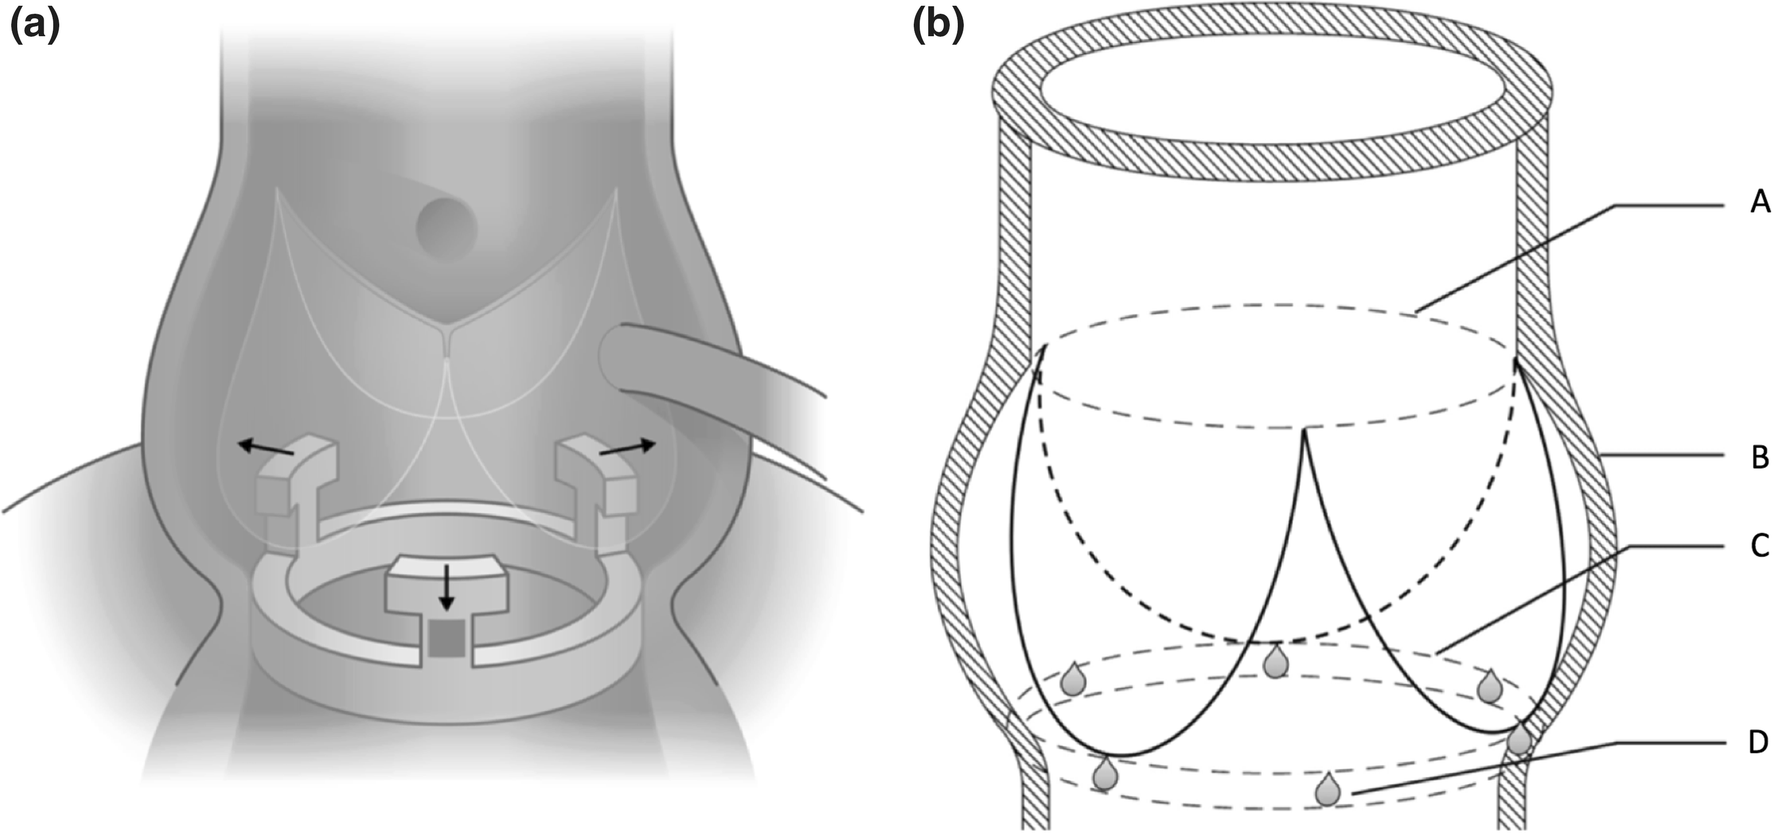 Asymmetric Dynamics of the Native Aortic Annulus Evaluated